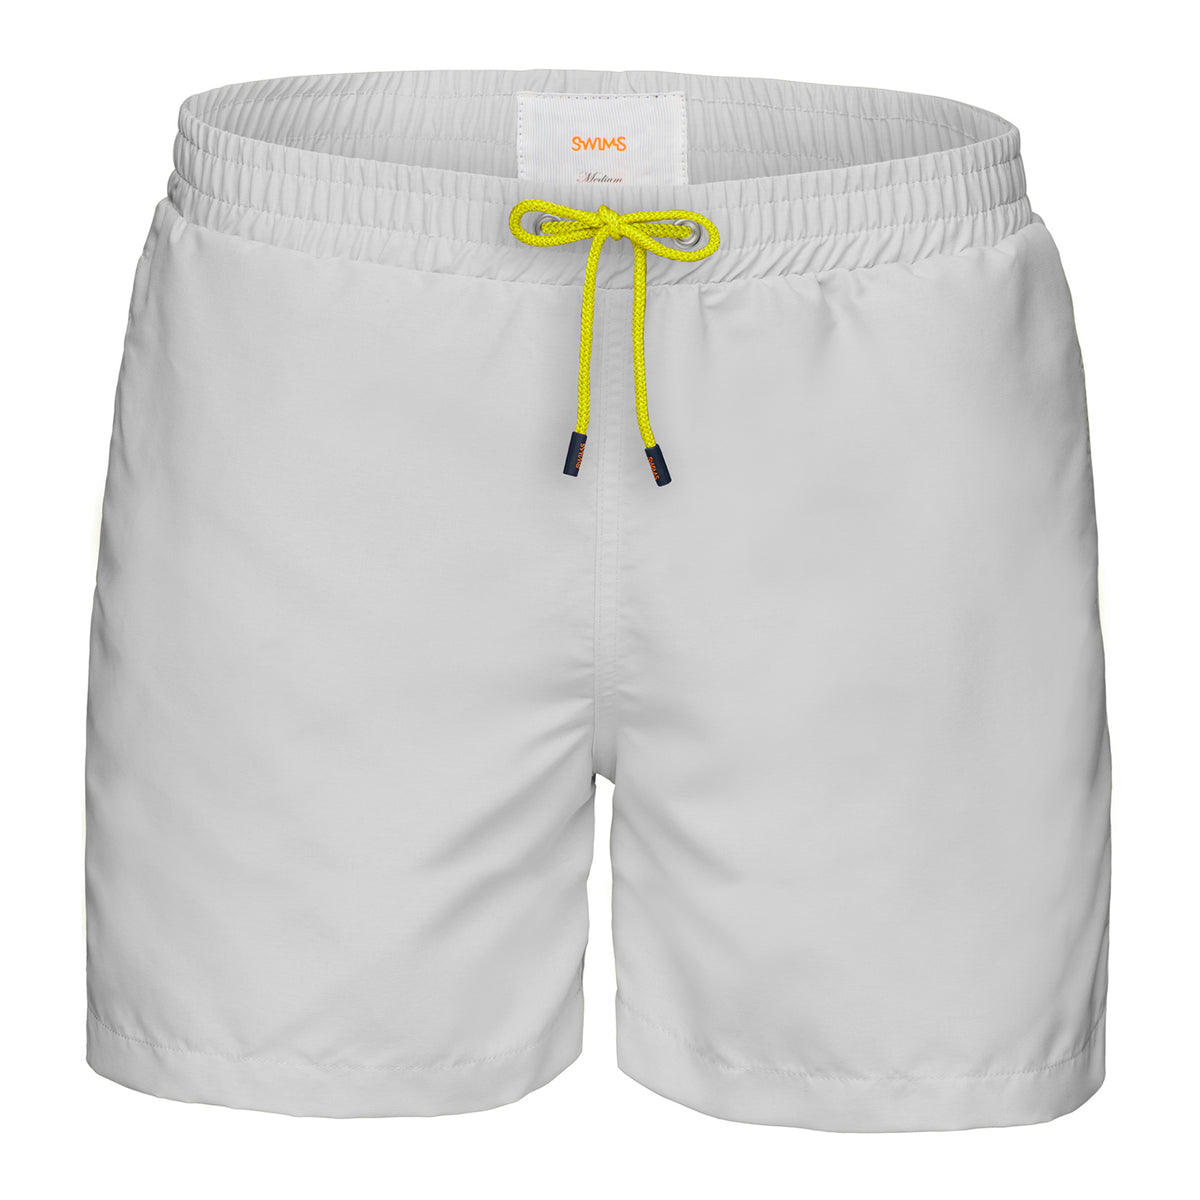 Breeze Swimshort Long - background::white,variant::Alloy